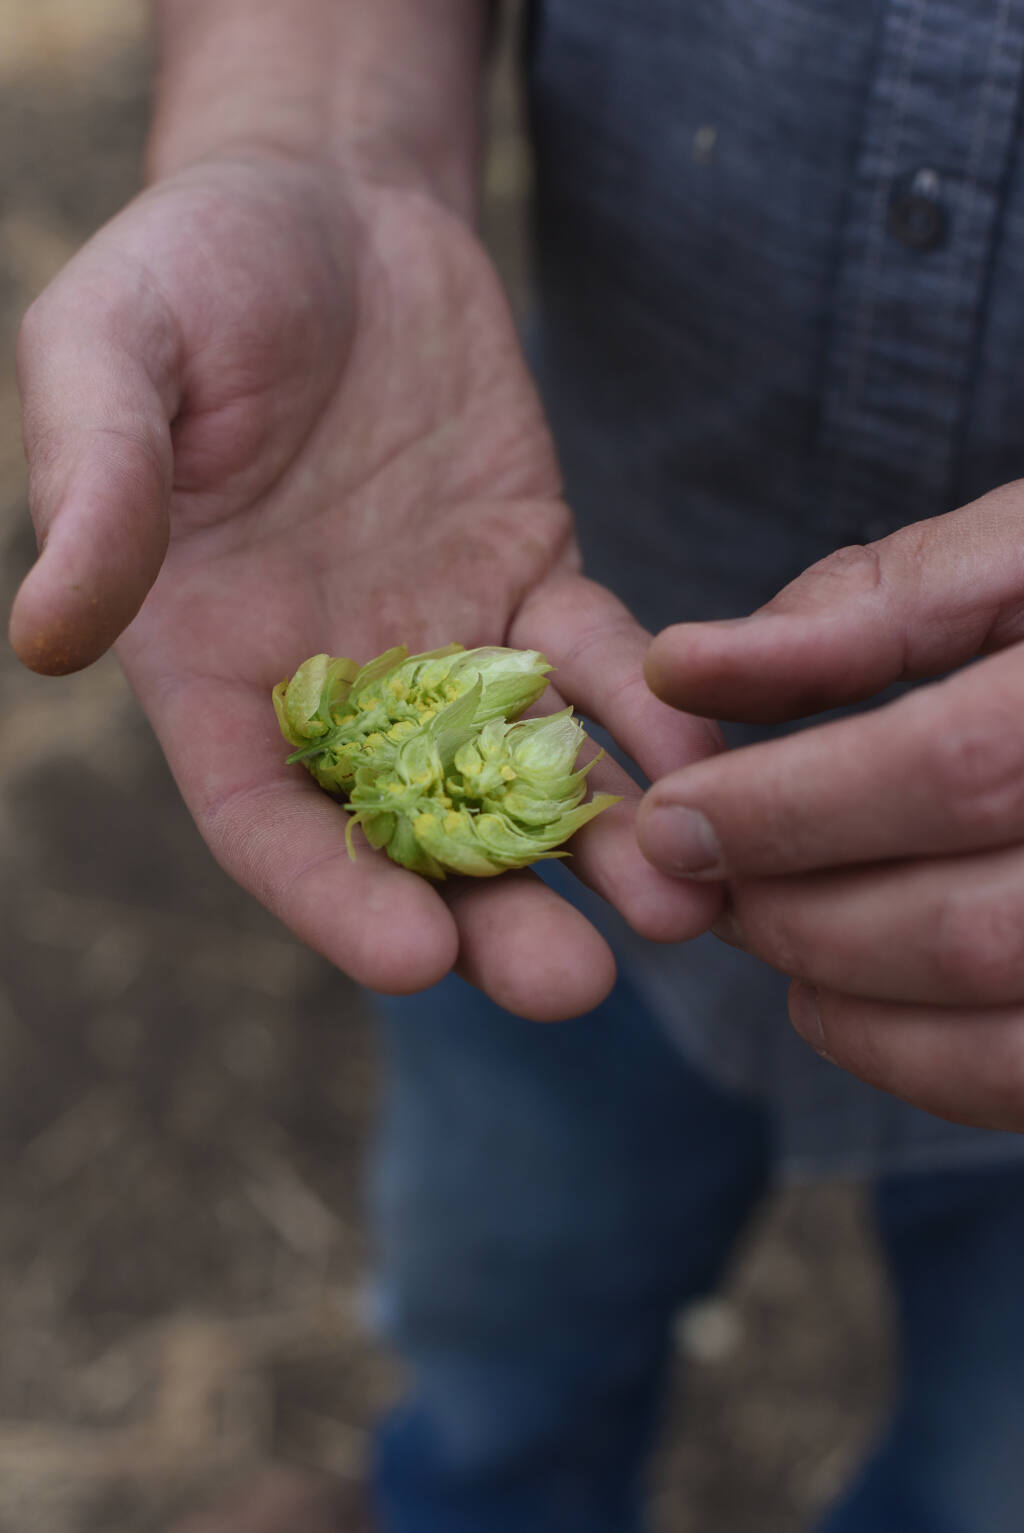 Brewmaster Andy Hooper of Seismic Brewing Co. cracks opens a fresh hop during a harvest in the hop yard at Crane Ranch in Santa Rosa on Sept. 2. (Erik Castro/For The Press Democrat)